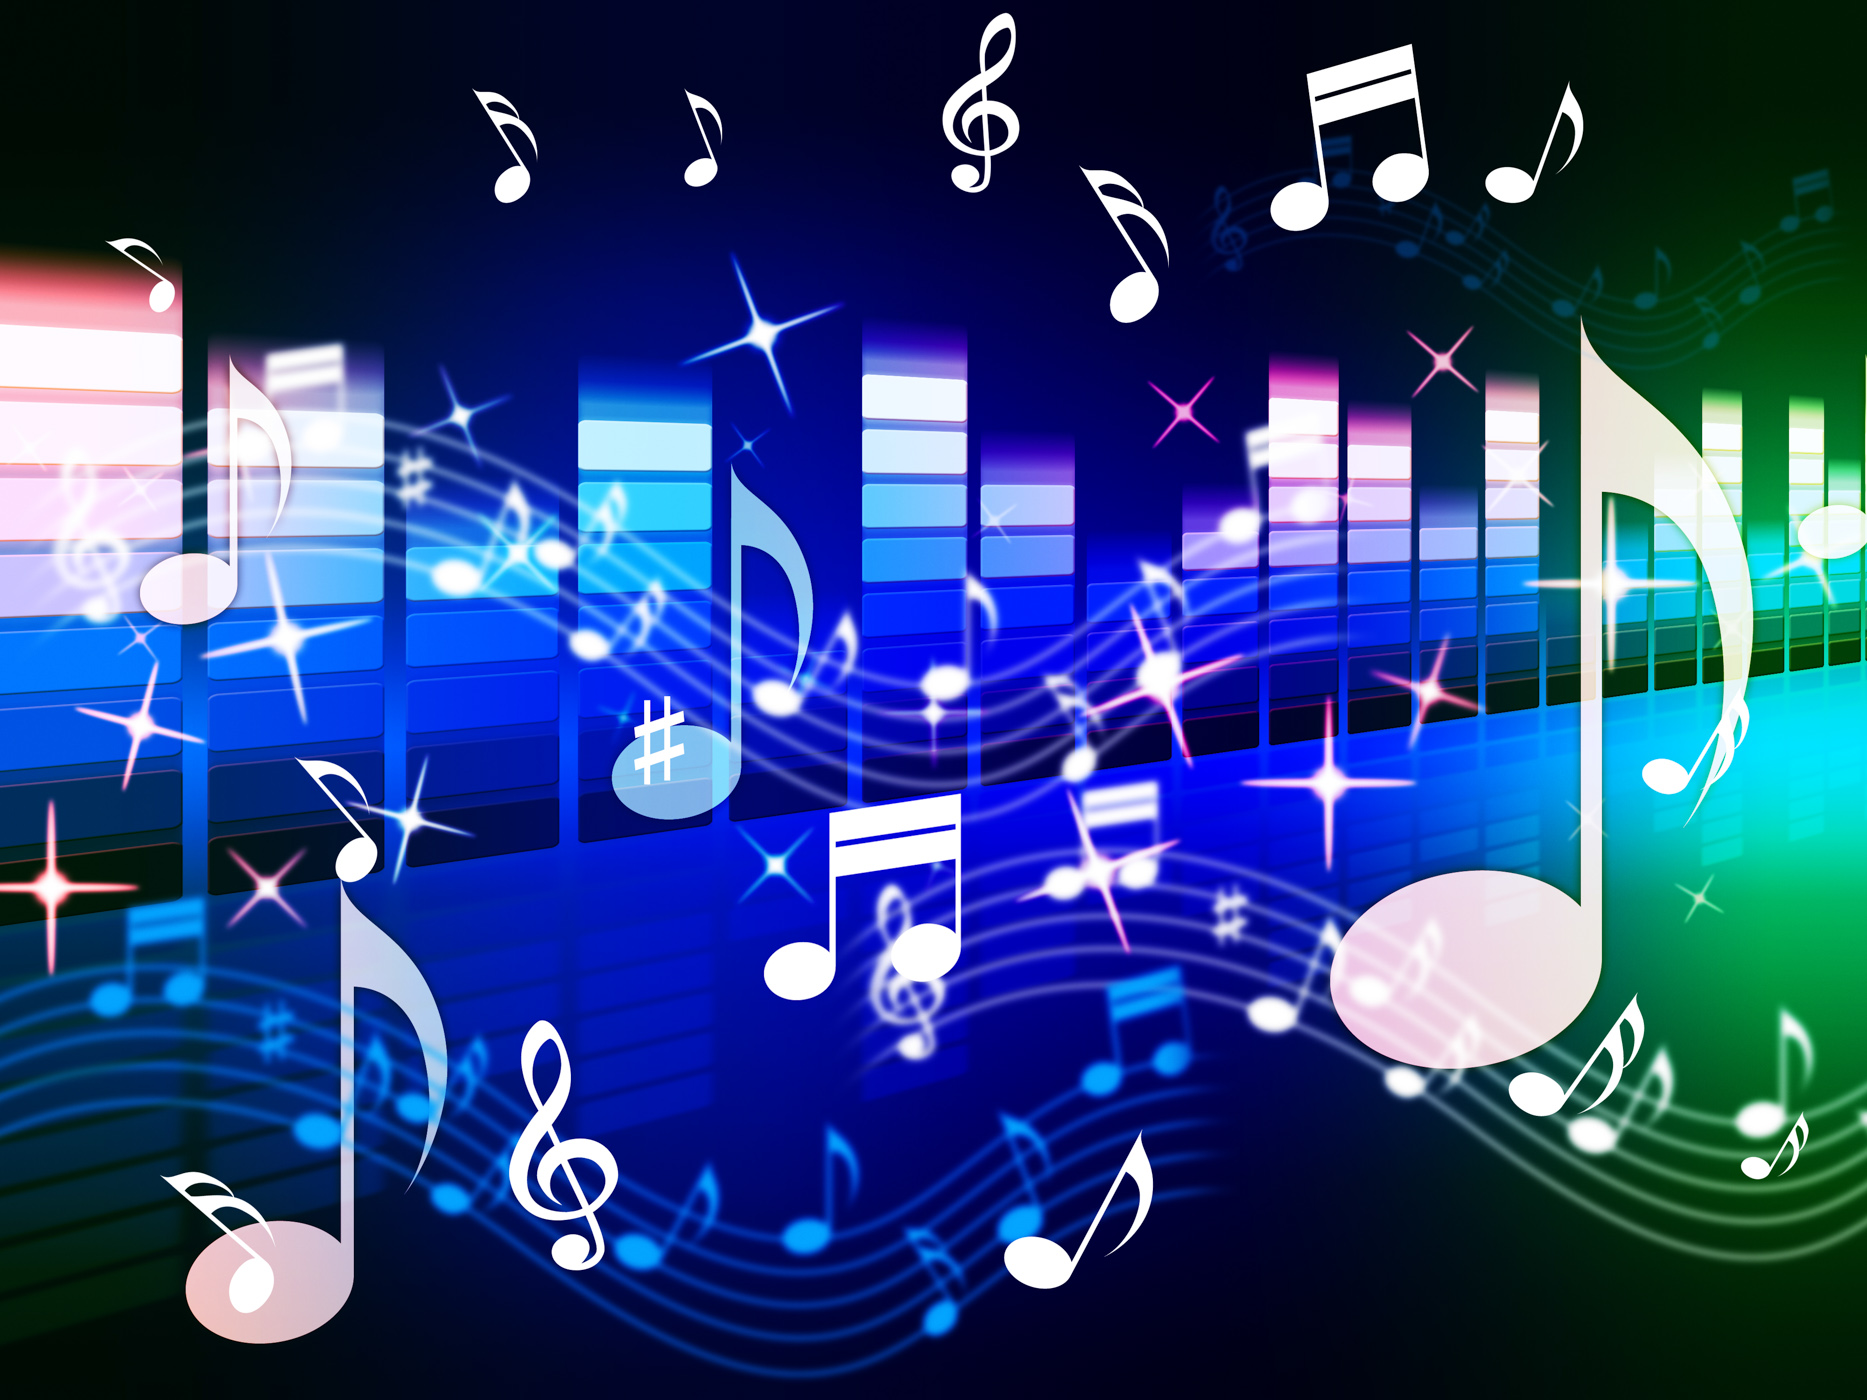 Free photo: Multicolored Music Background Shows Song RandB Or Blues